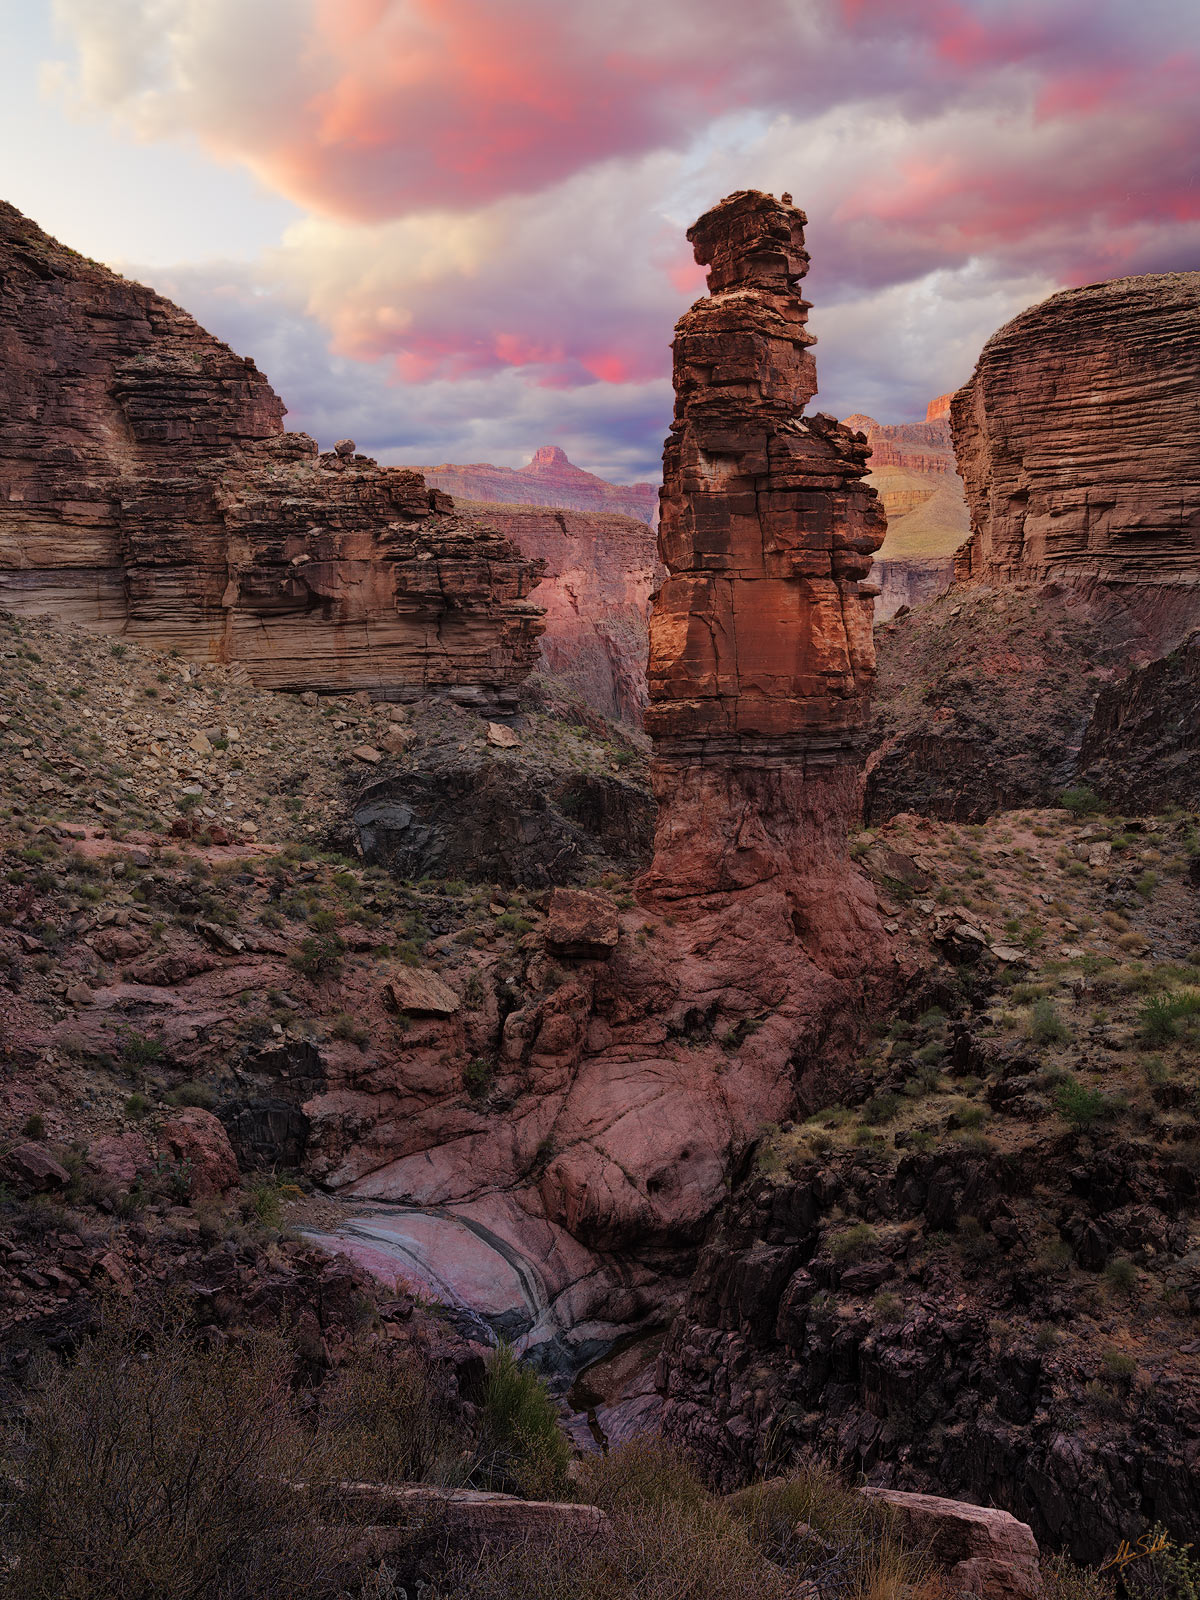 Expedition, FujiFilm, GFX, GFX 100, Grand Canyon, Hoodoo, Monument Creek, National Park, River Trip, Sunset, photo